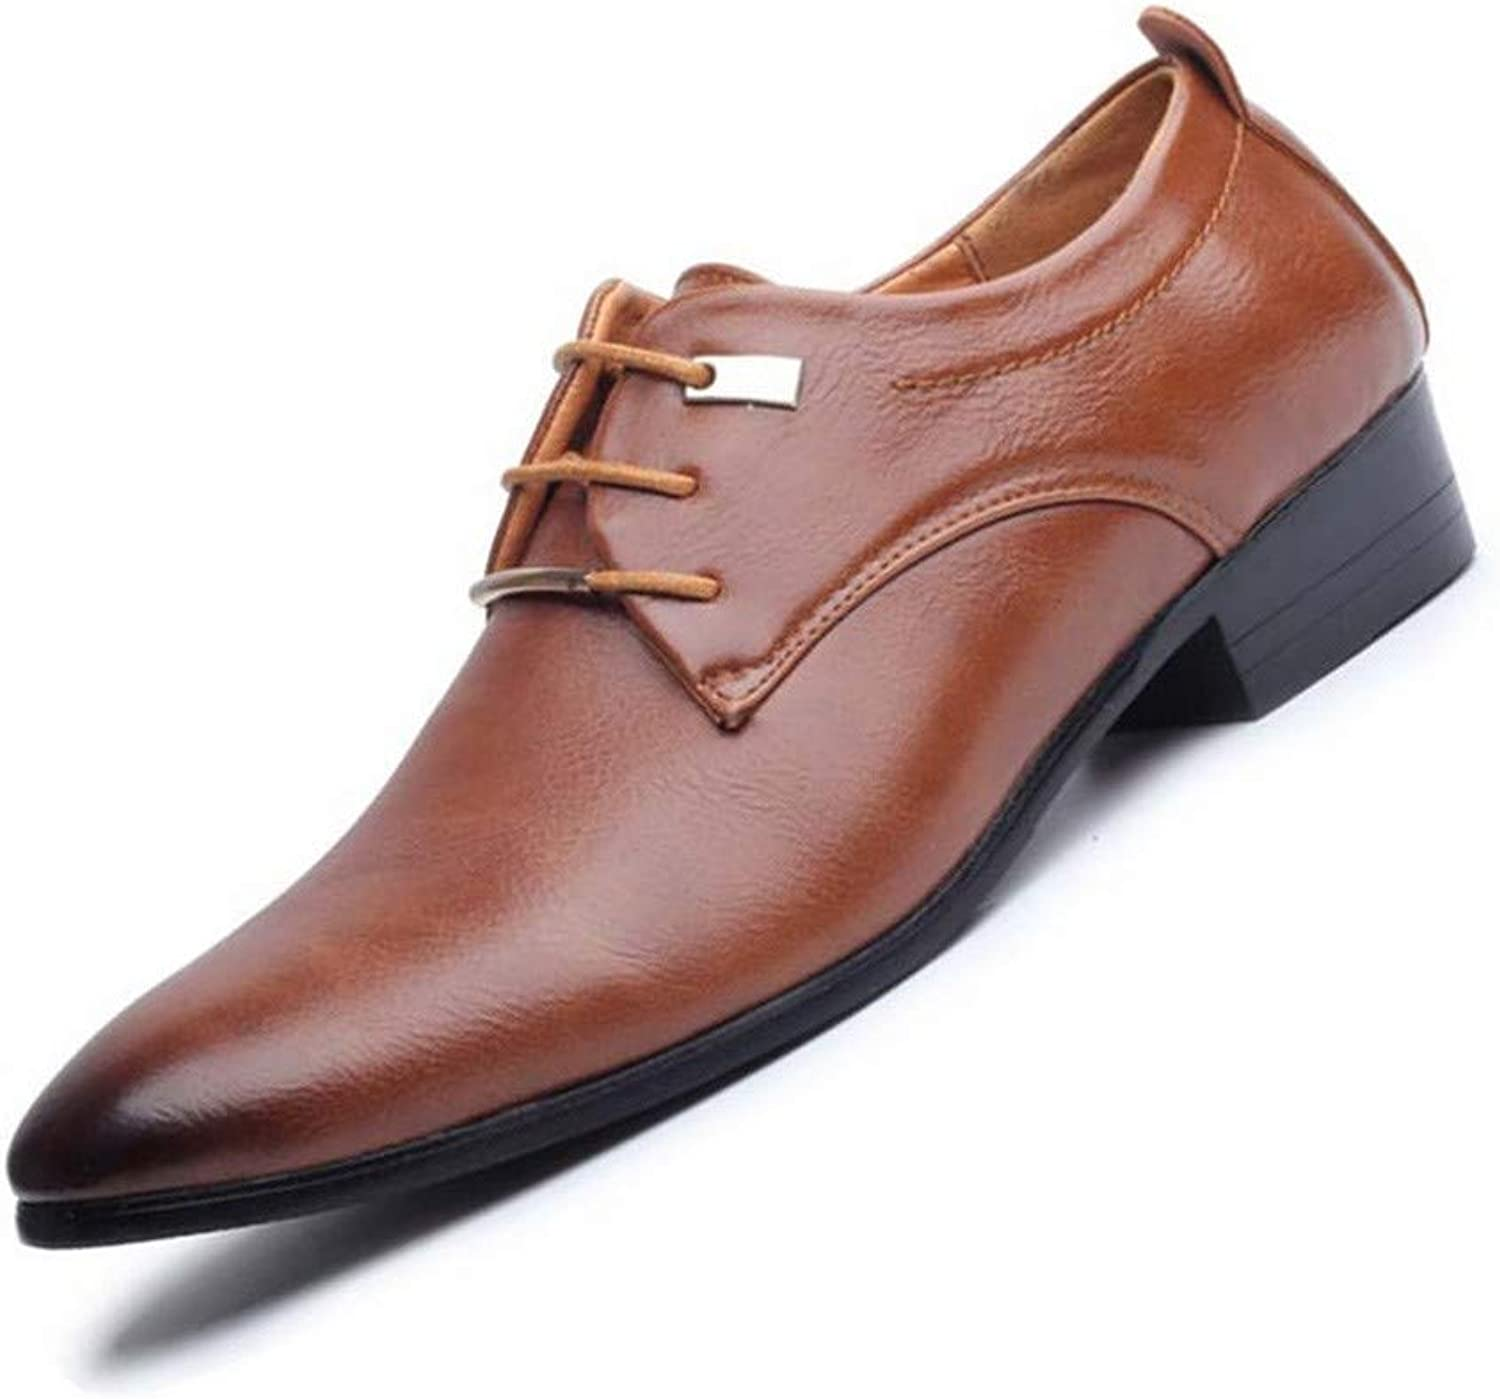 AKJC Business shoes Men Men's Business Dress shoes Oxford Men's Leather shoes with Pointed shoes Men's shoes